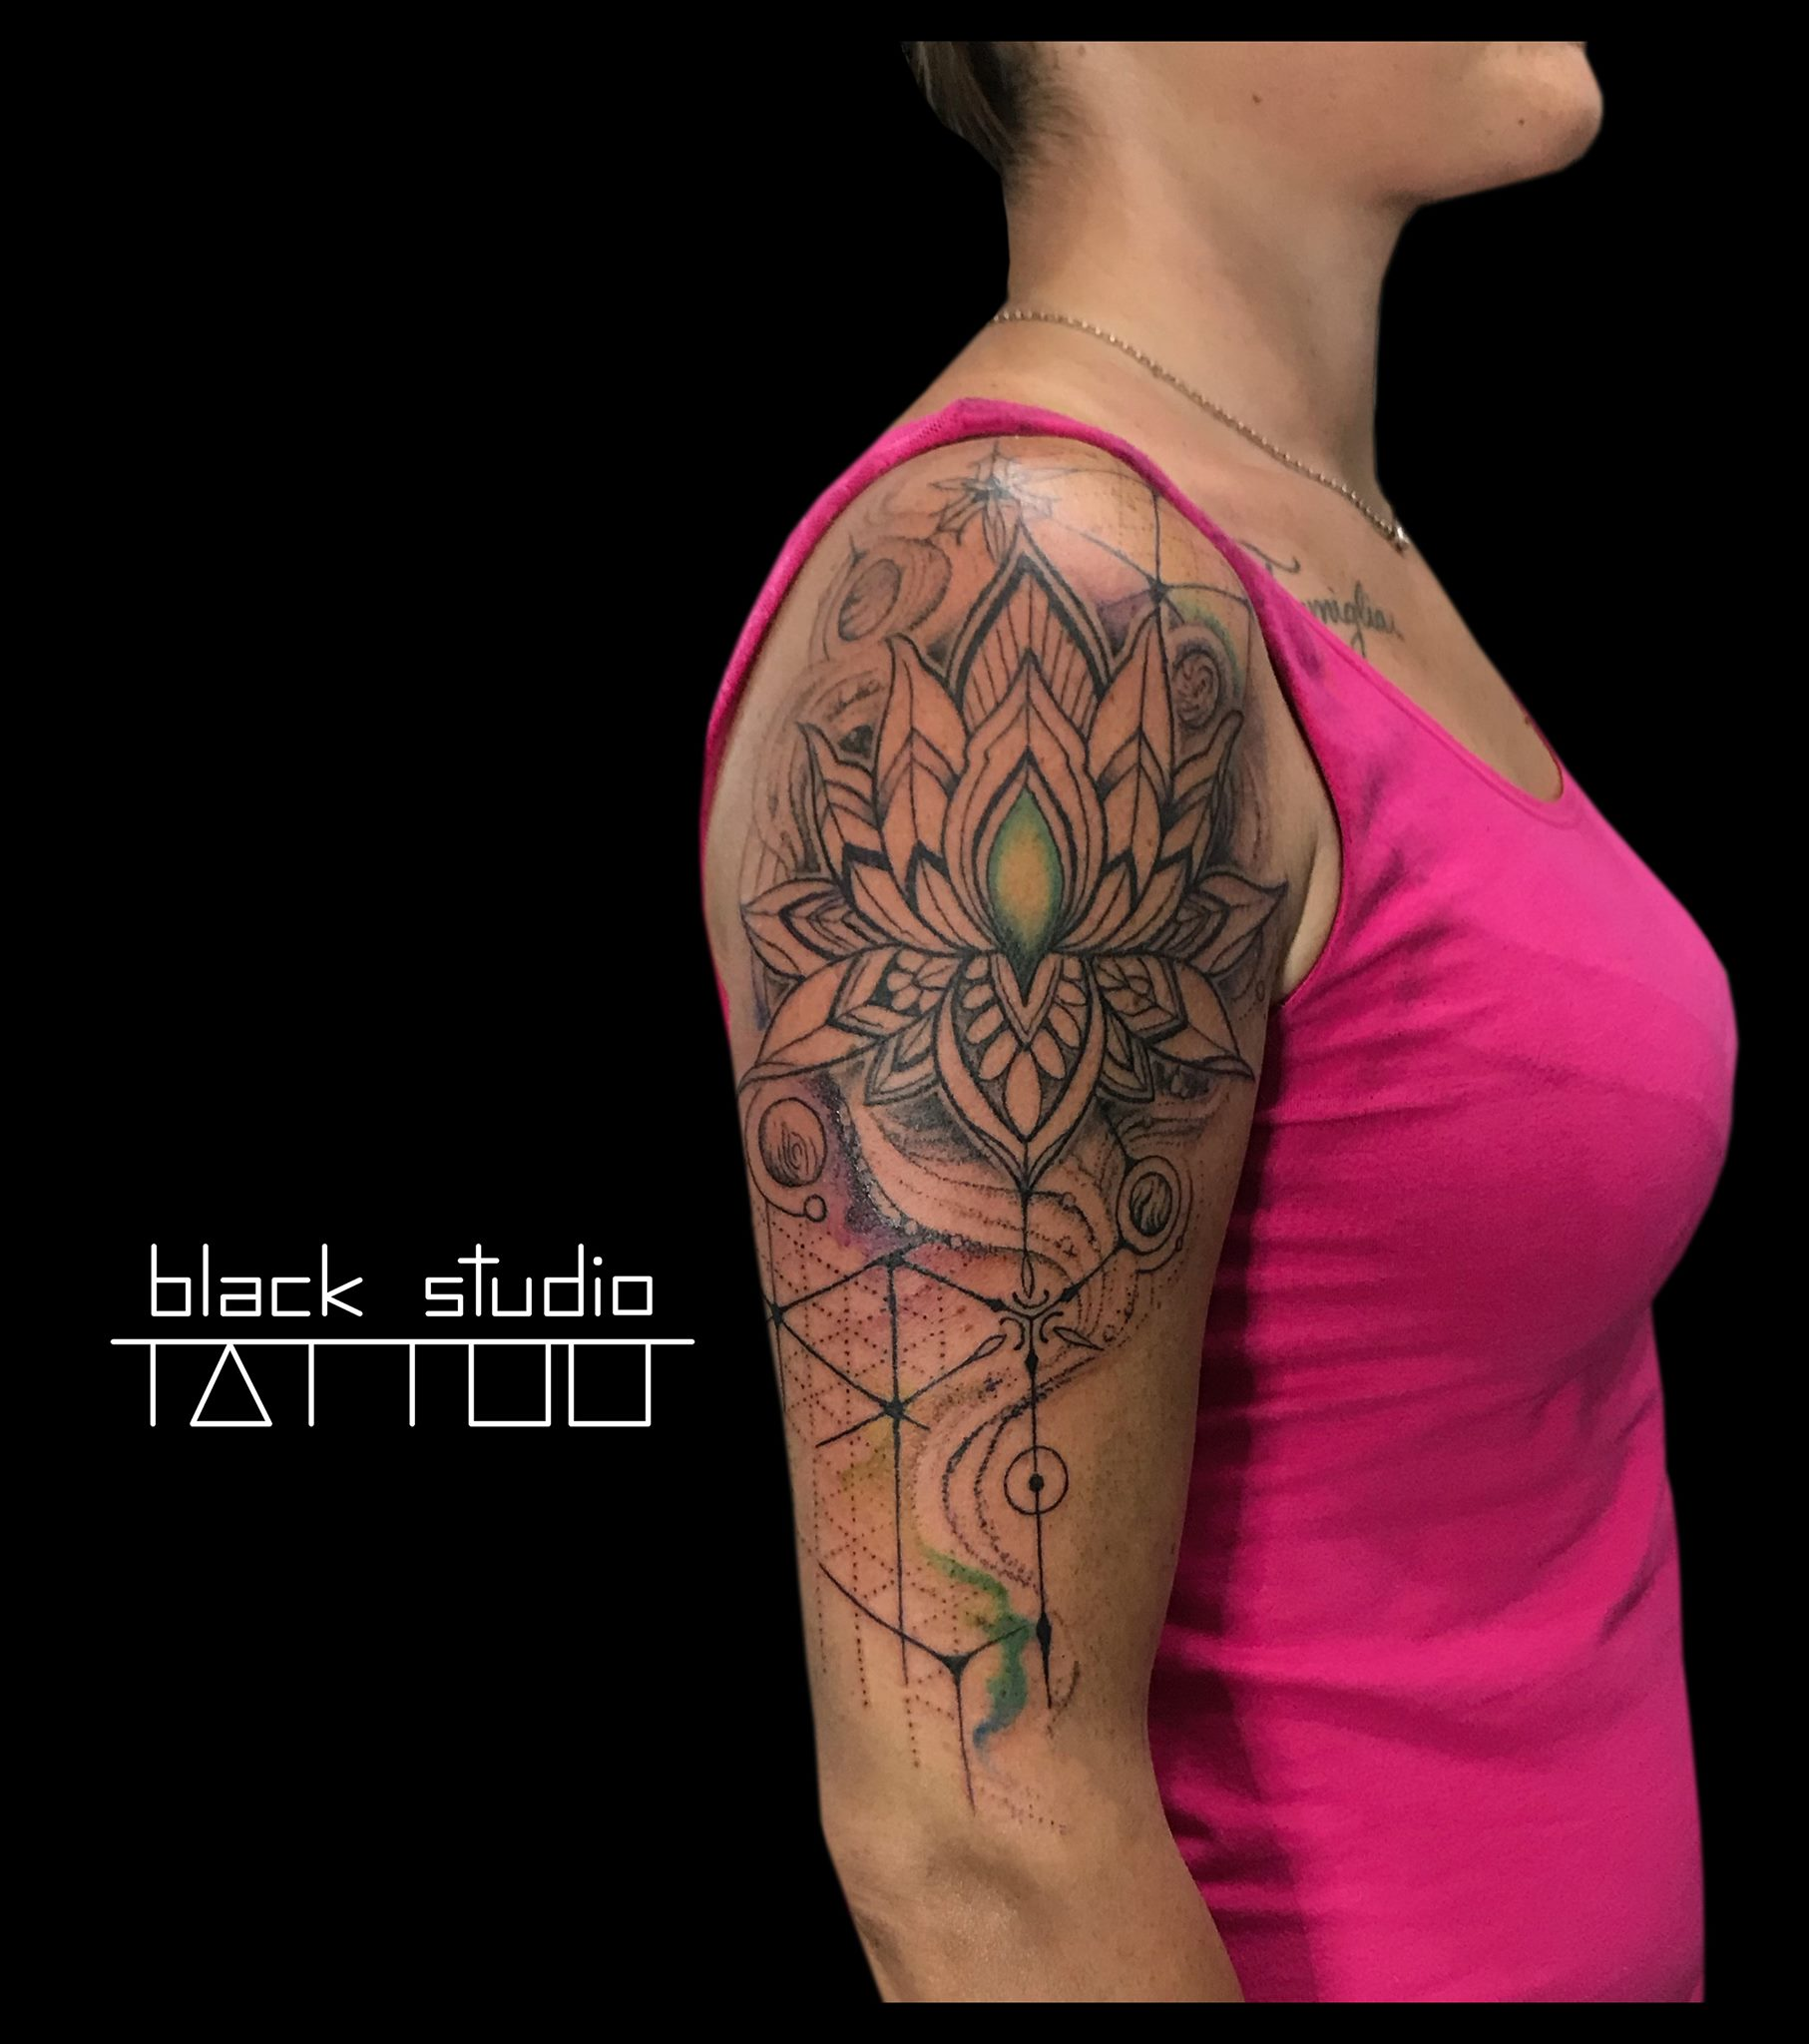 Black Studio Tattoo Torino